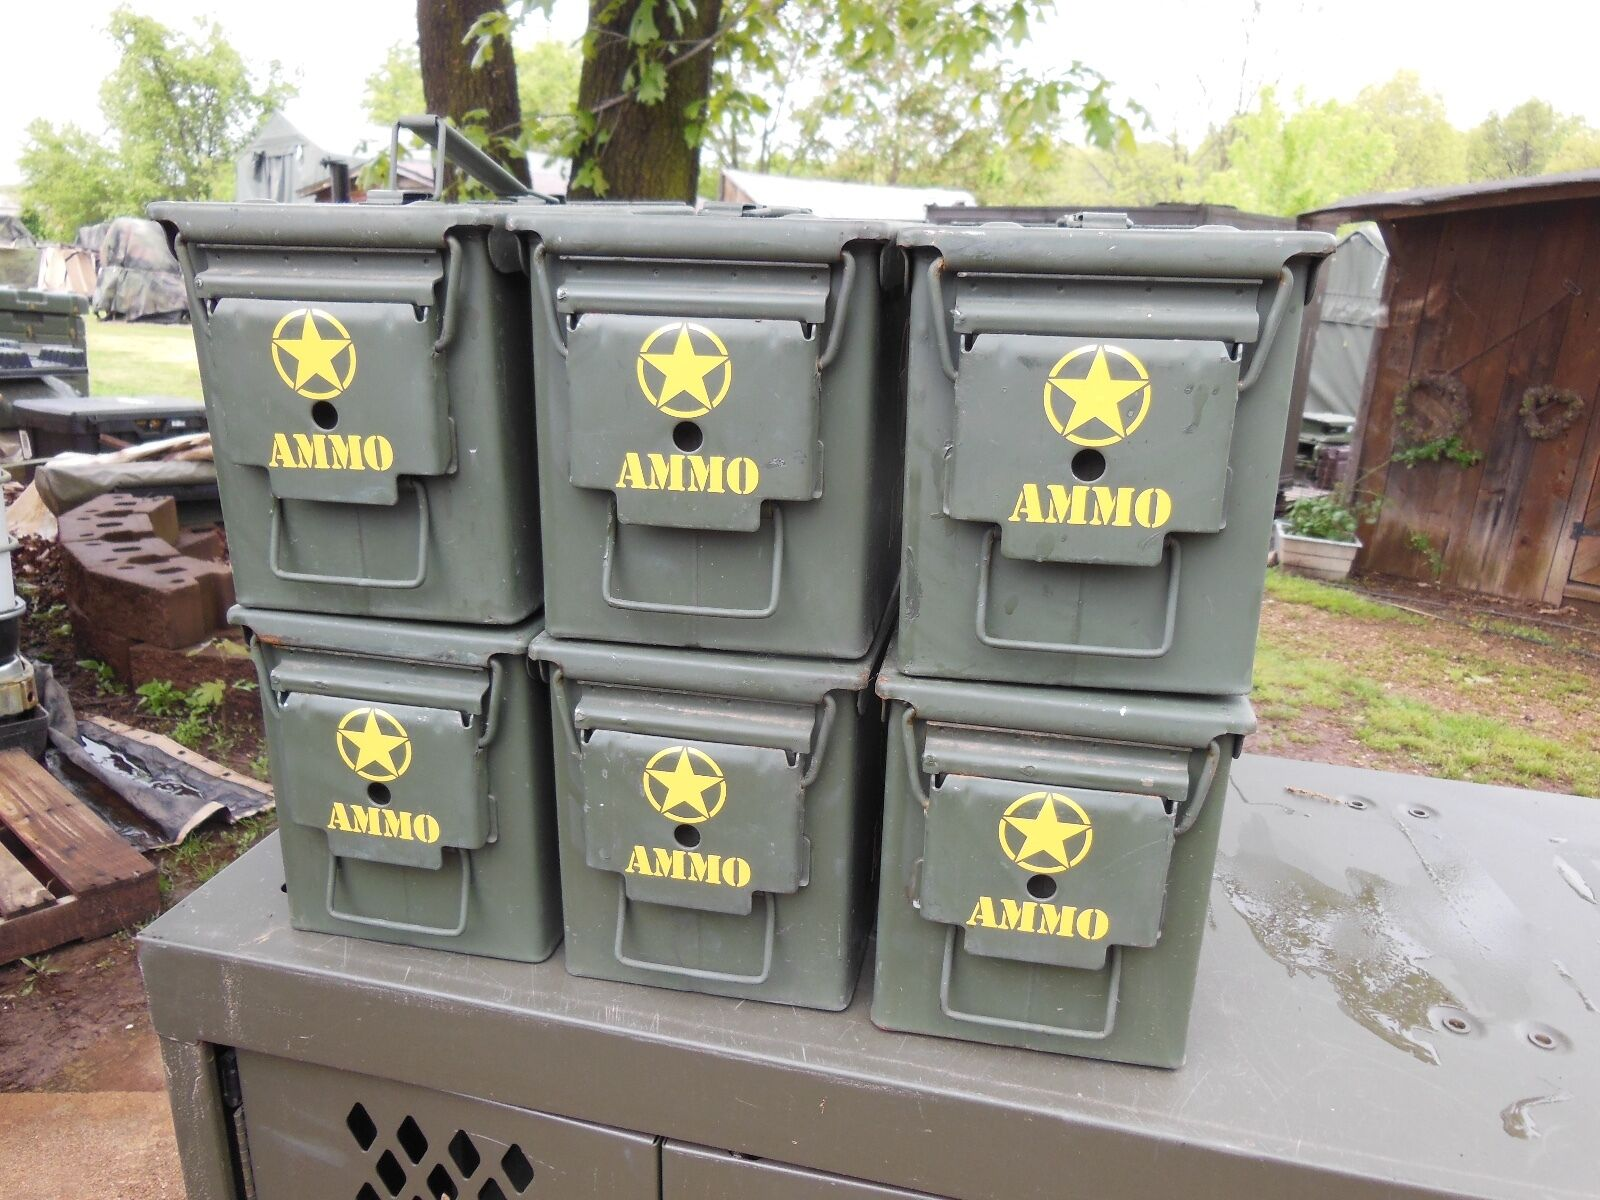 6 military surplus 50 cal ammo cans tool box hunting camping tent